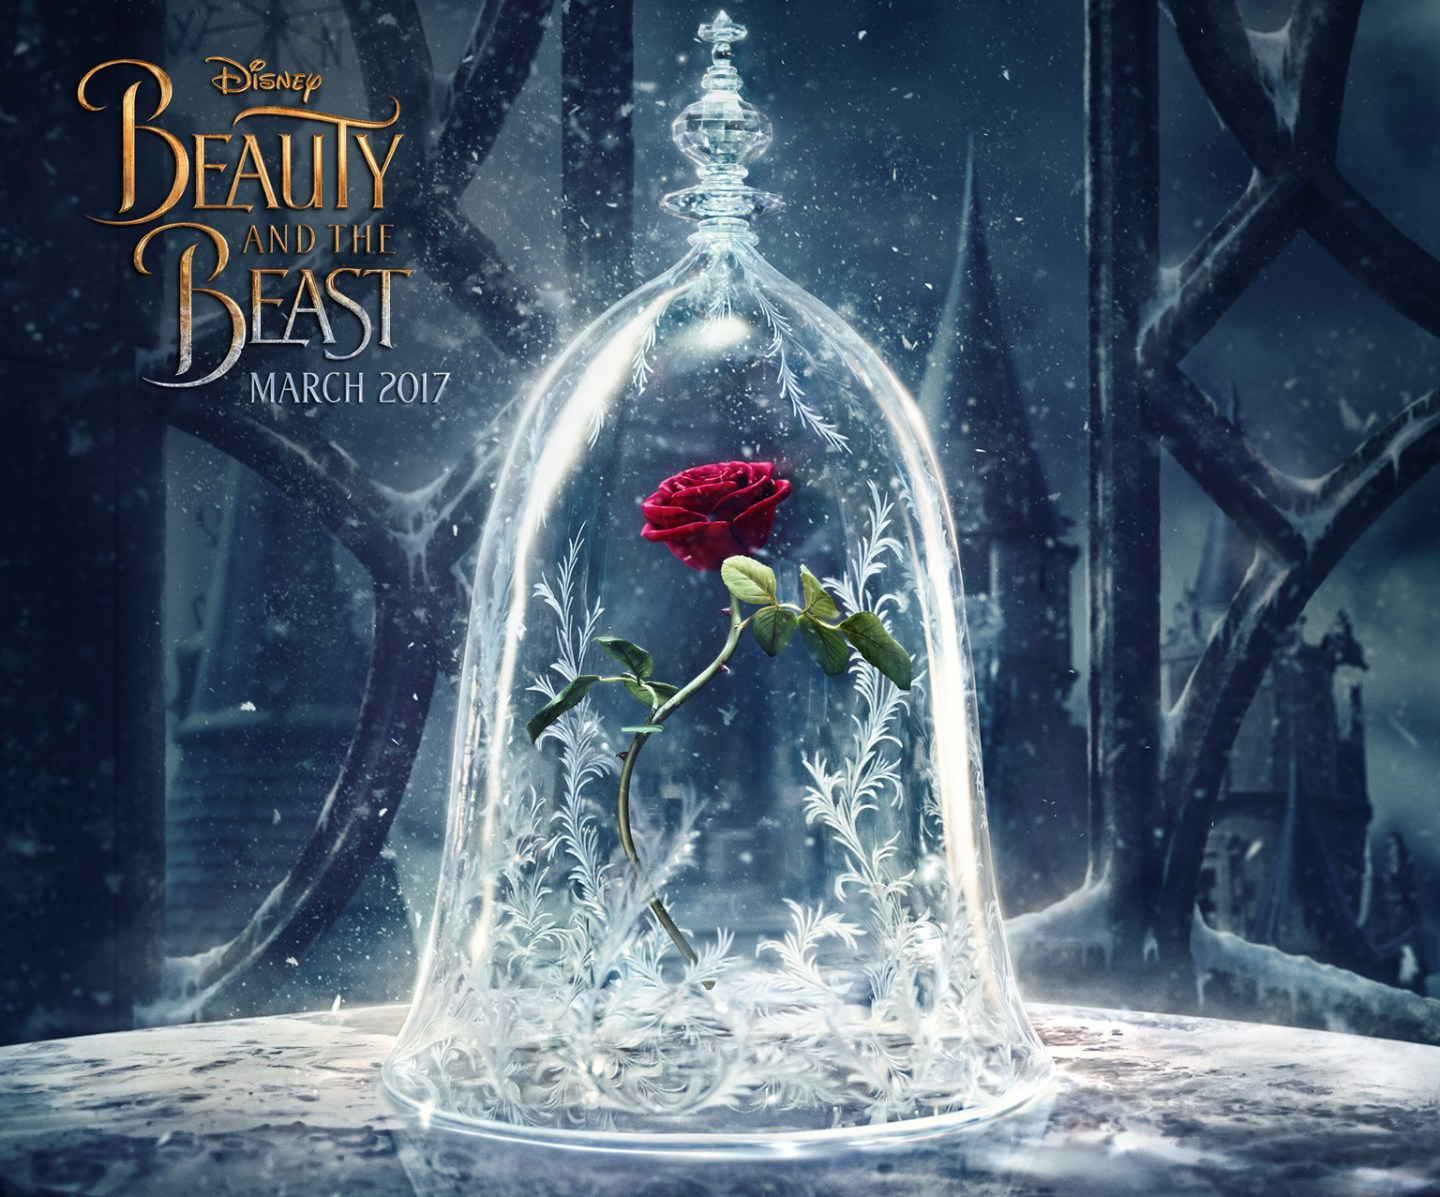 Beauty and the Beast: The controversies